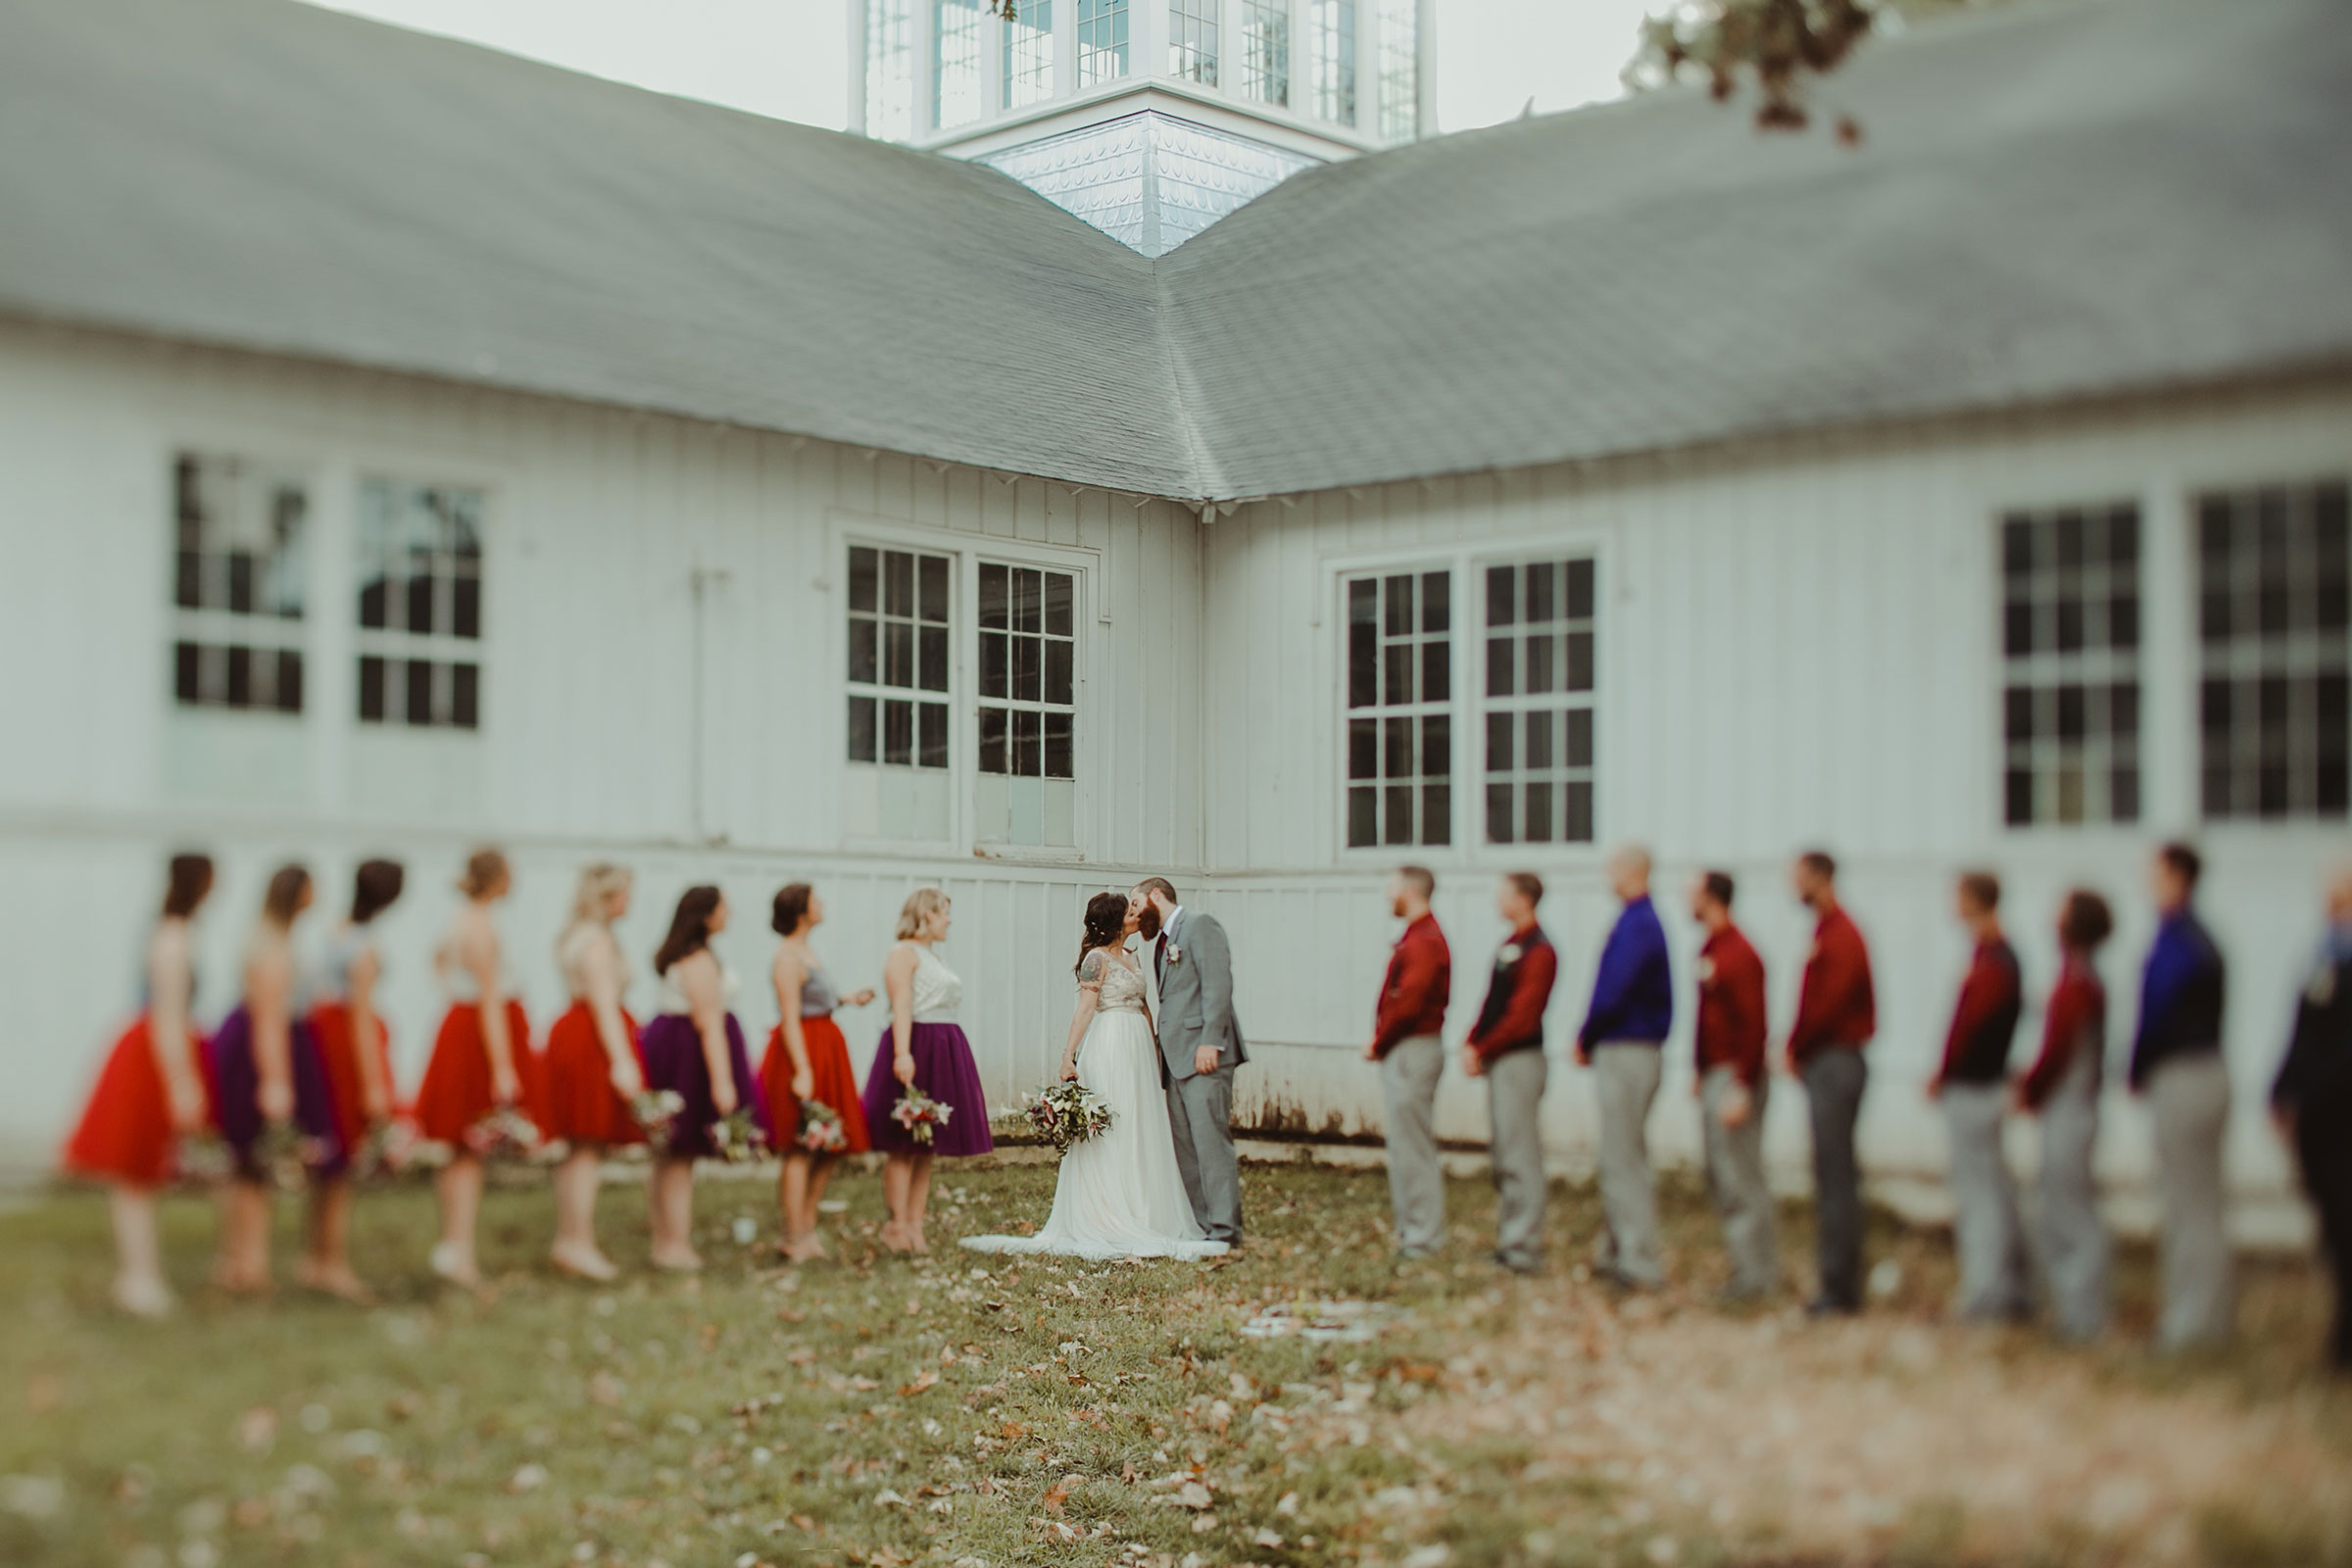 wedding-party-looking-at-bride-groom-kissing-iowa-state-fairgrounds-desmoines-iowa-raelyn-ramey-photography.jpg